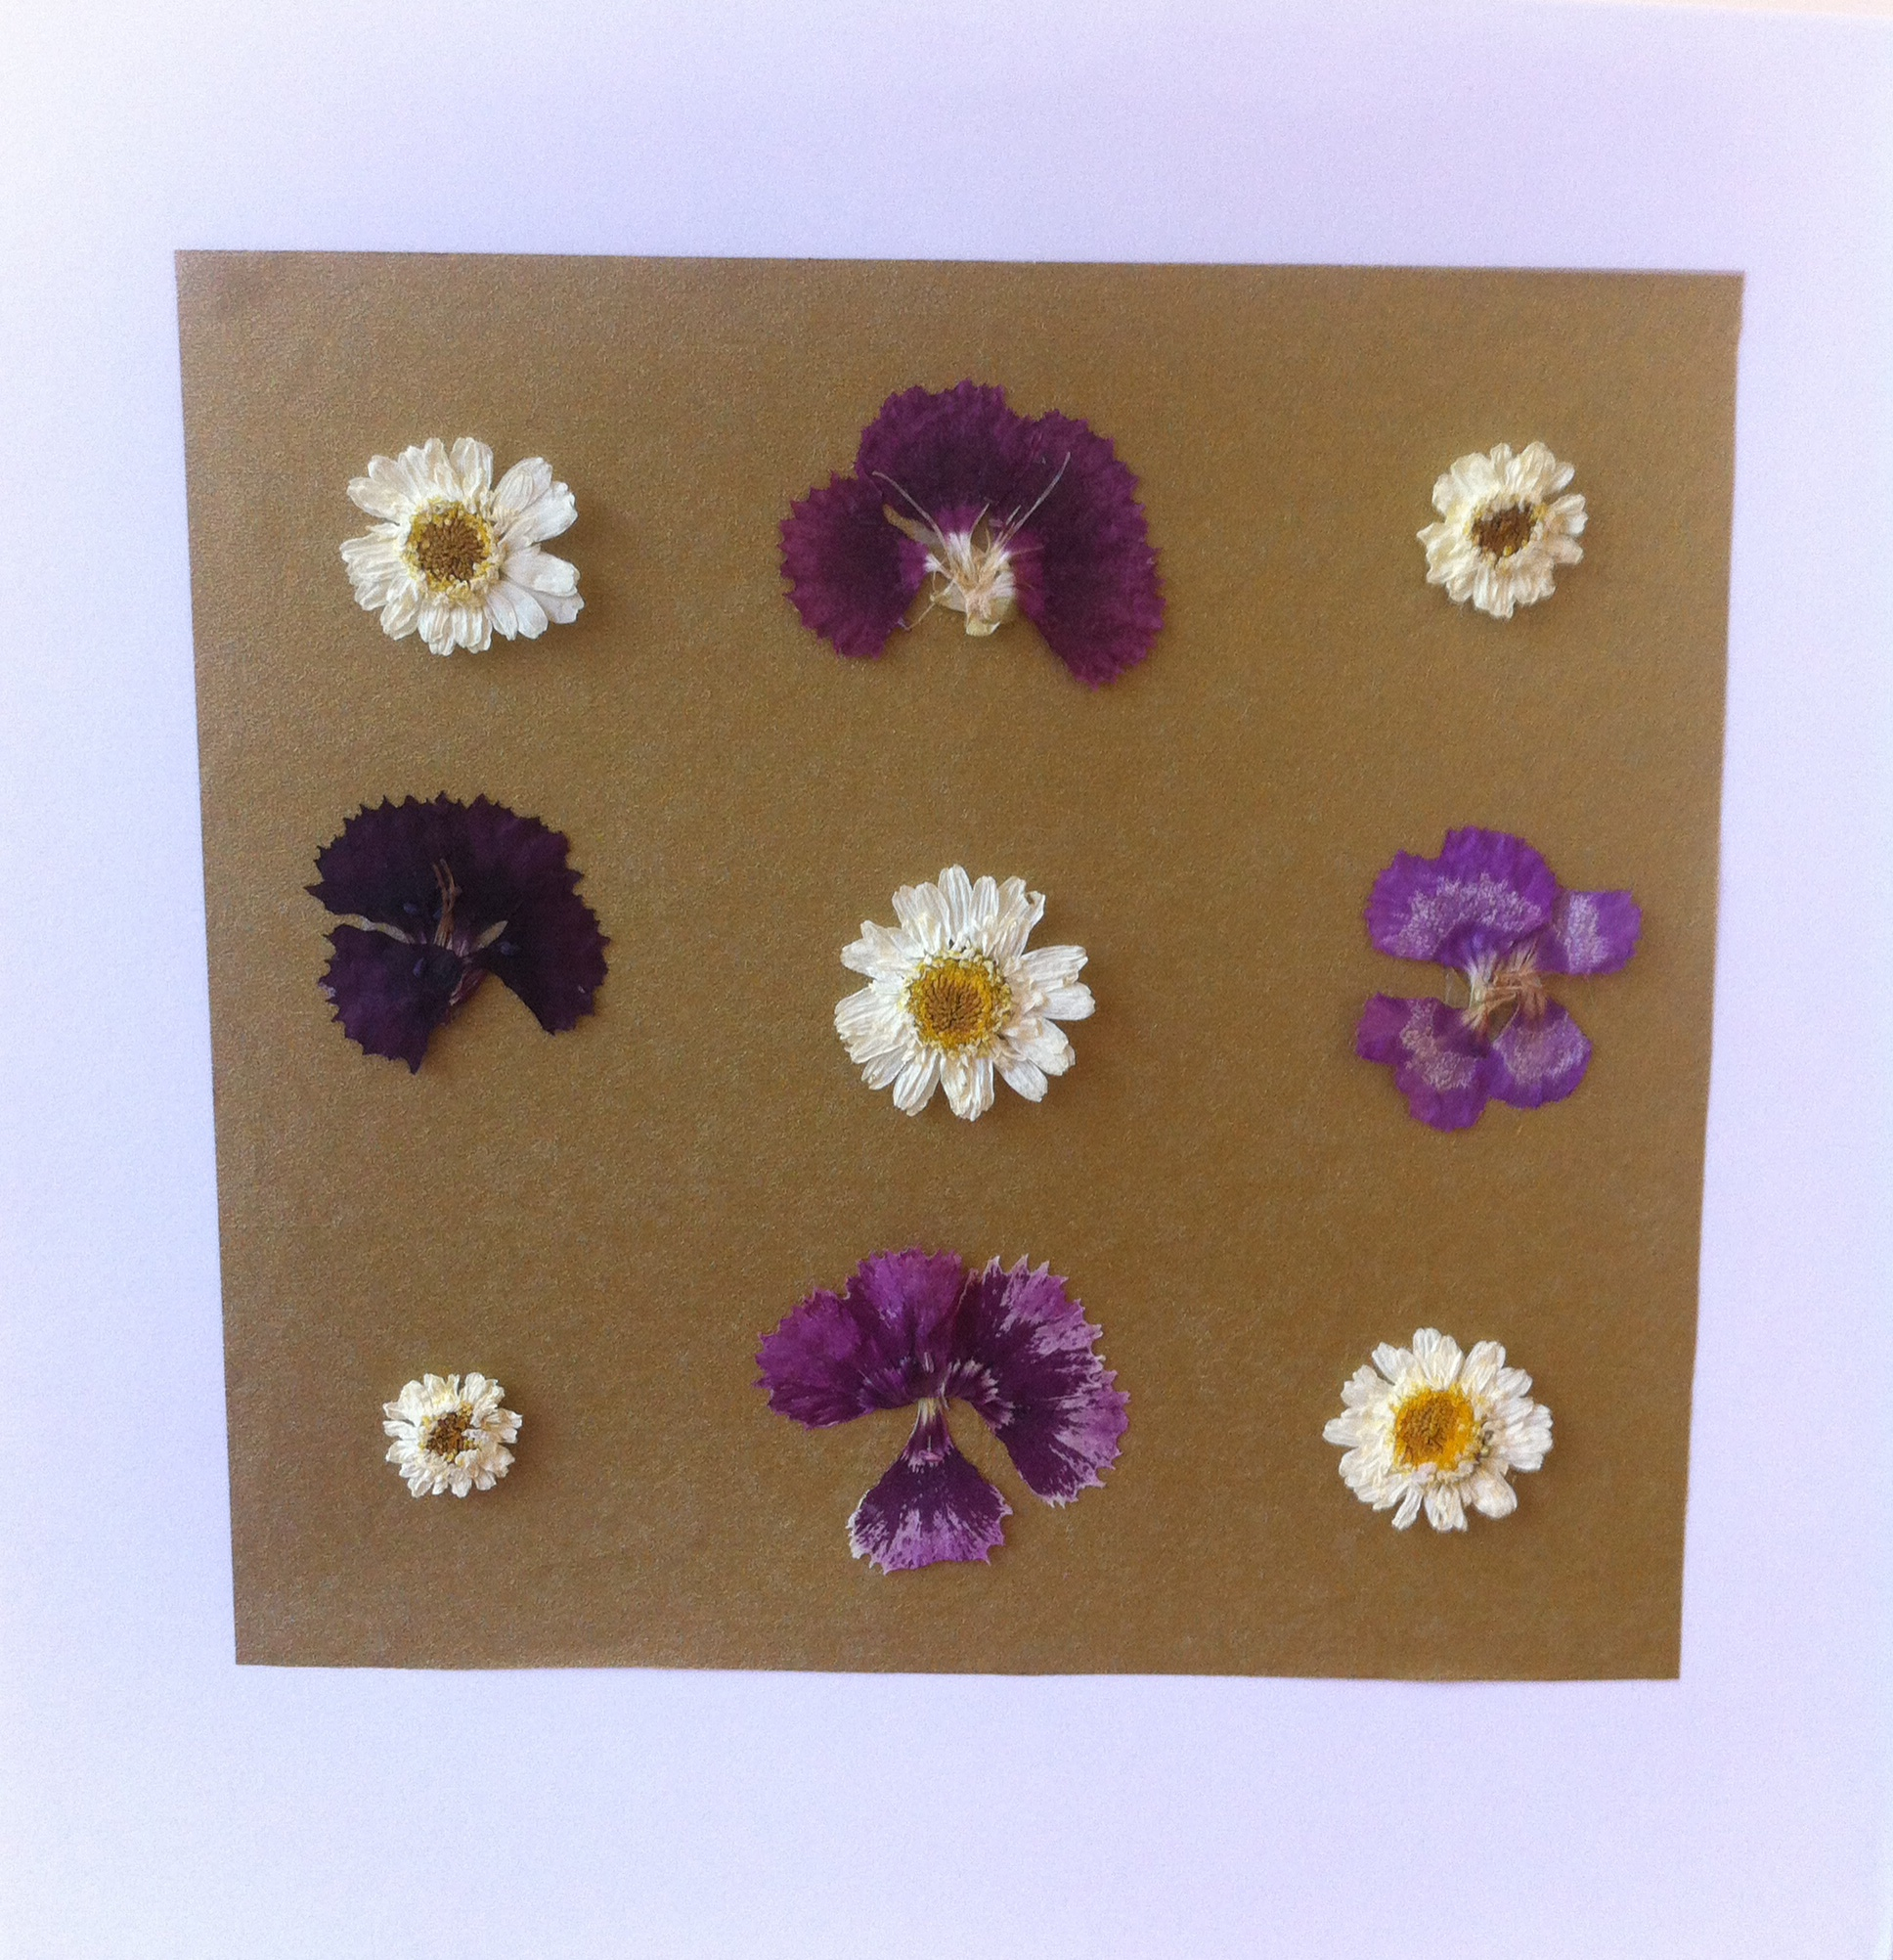 My tips for making your own greetings cards thinking hatt flower card 2 m4hsunfo